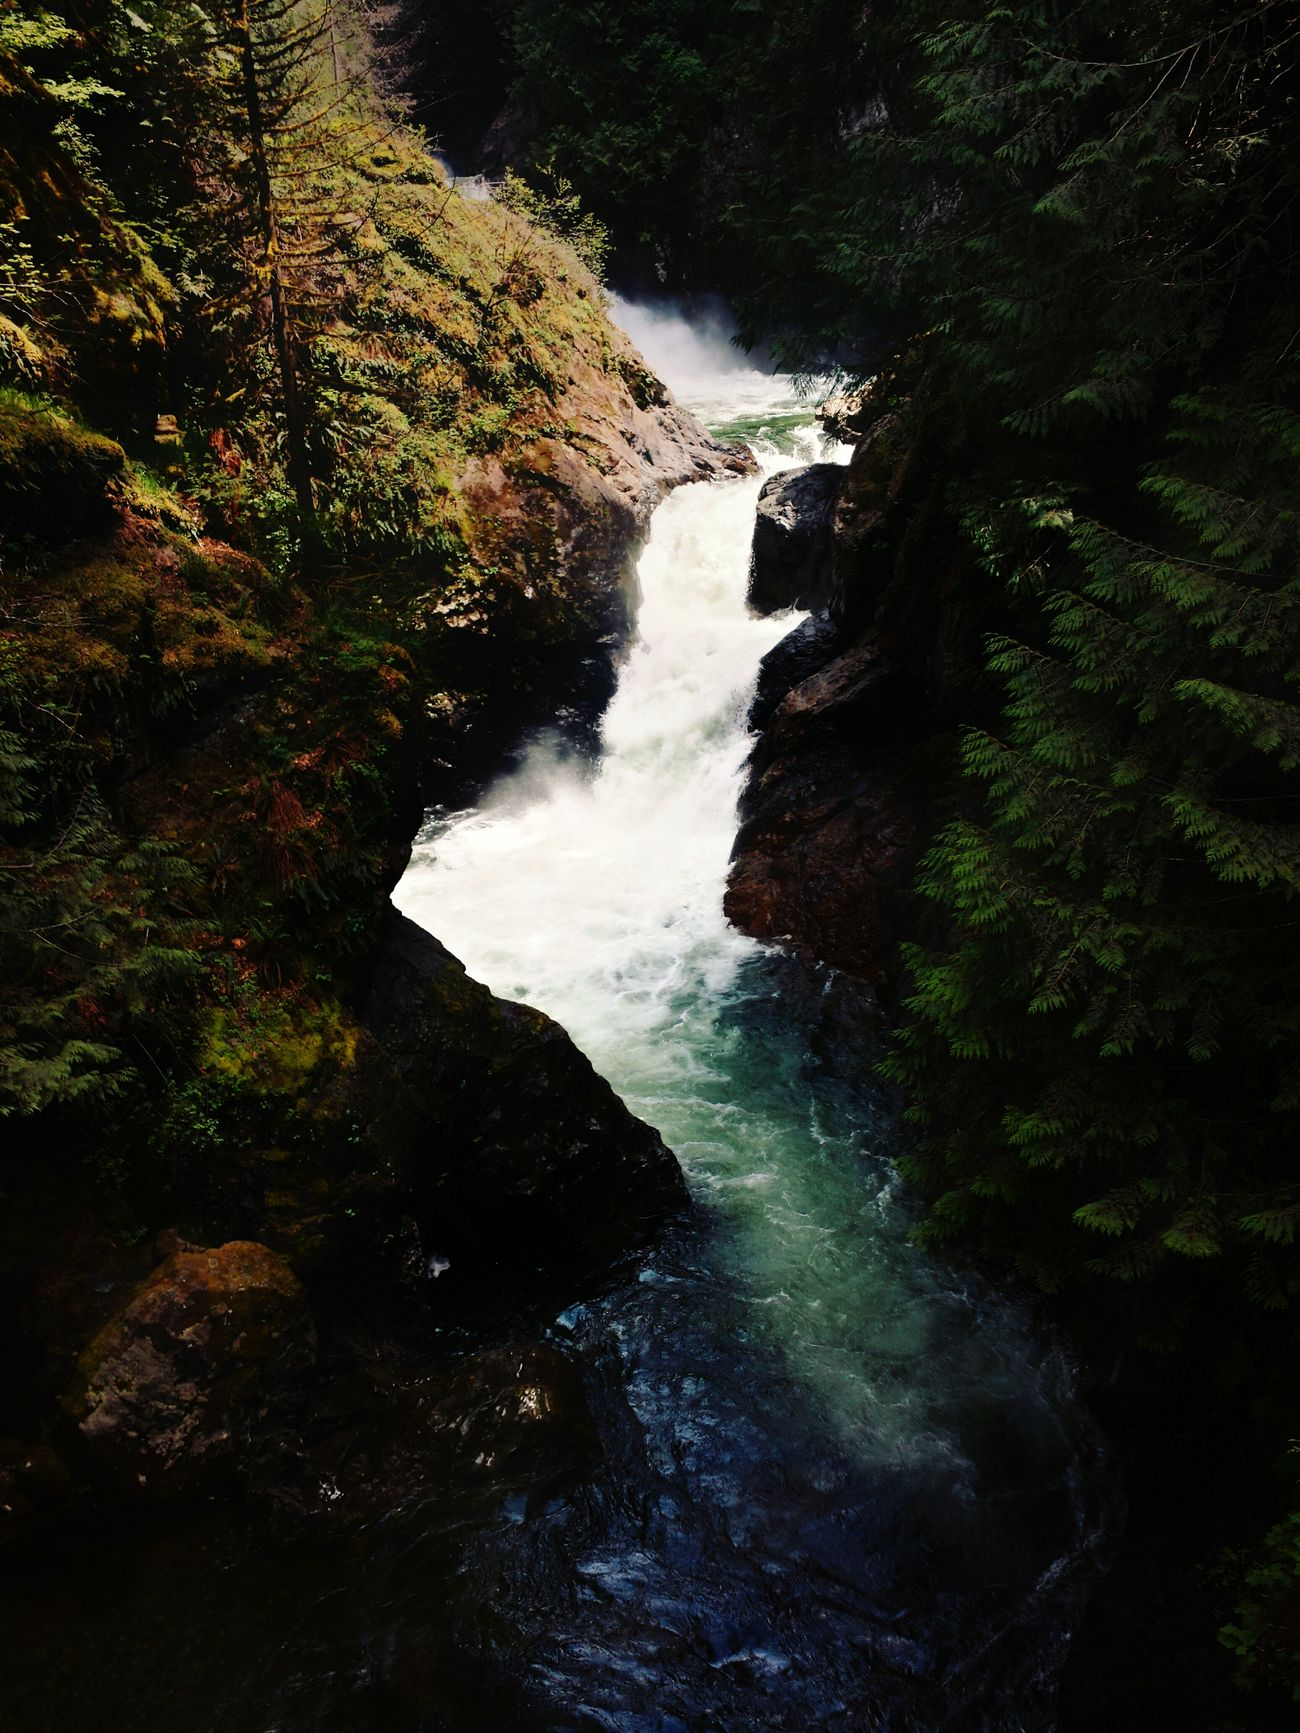 Pre-waterfall. Water Nature Motion No People Outdoors Beauty In Nature Waterfall Day Forest Scenics Power In Nature Tree River Backgrounds Hiking Washington State Fresh PNWonderland Nature_collection Twin Falls PNW Moss Pacific Northwest  Non-urban Scene Rock - Object